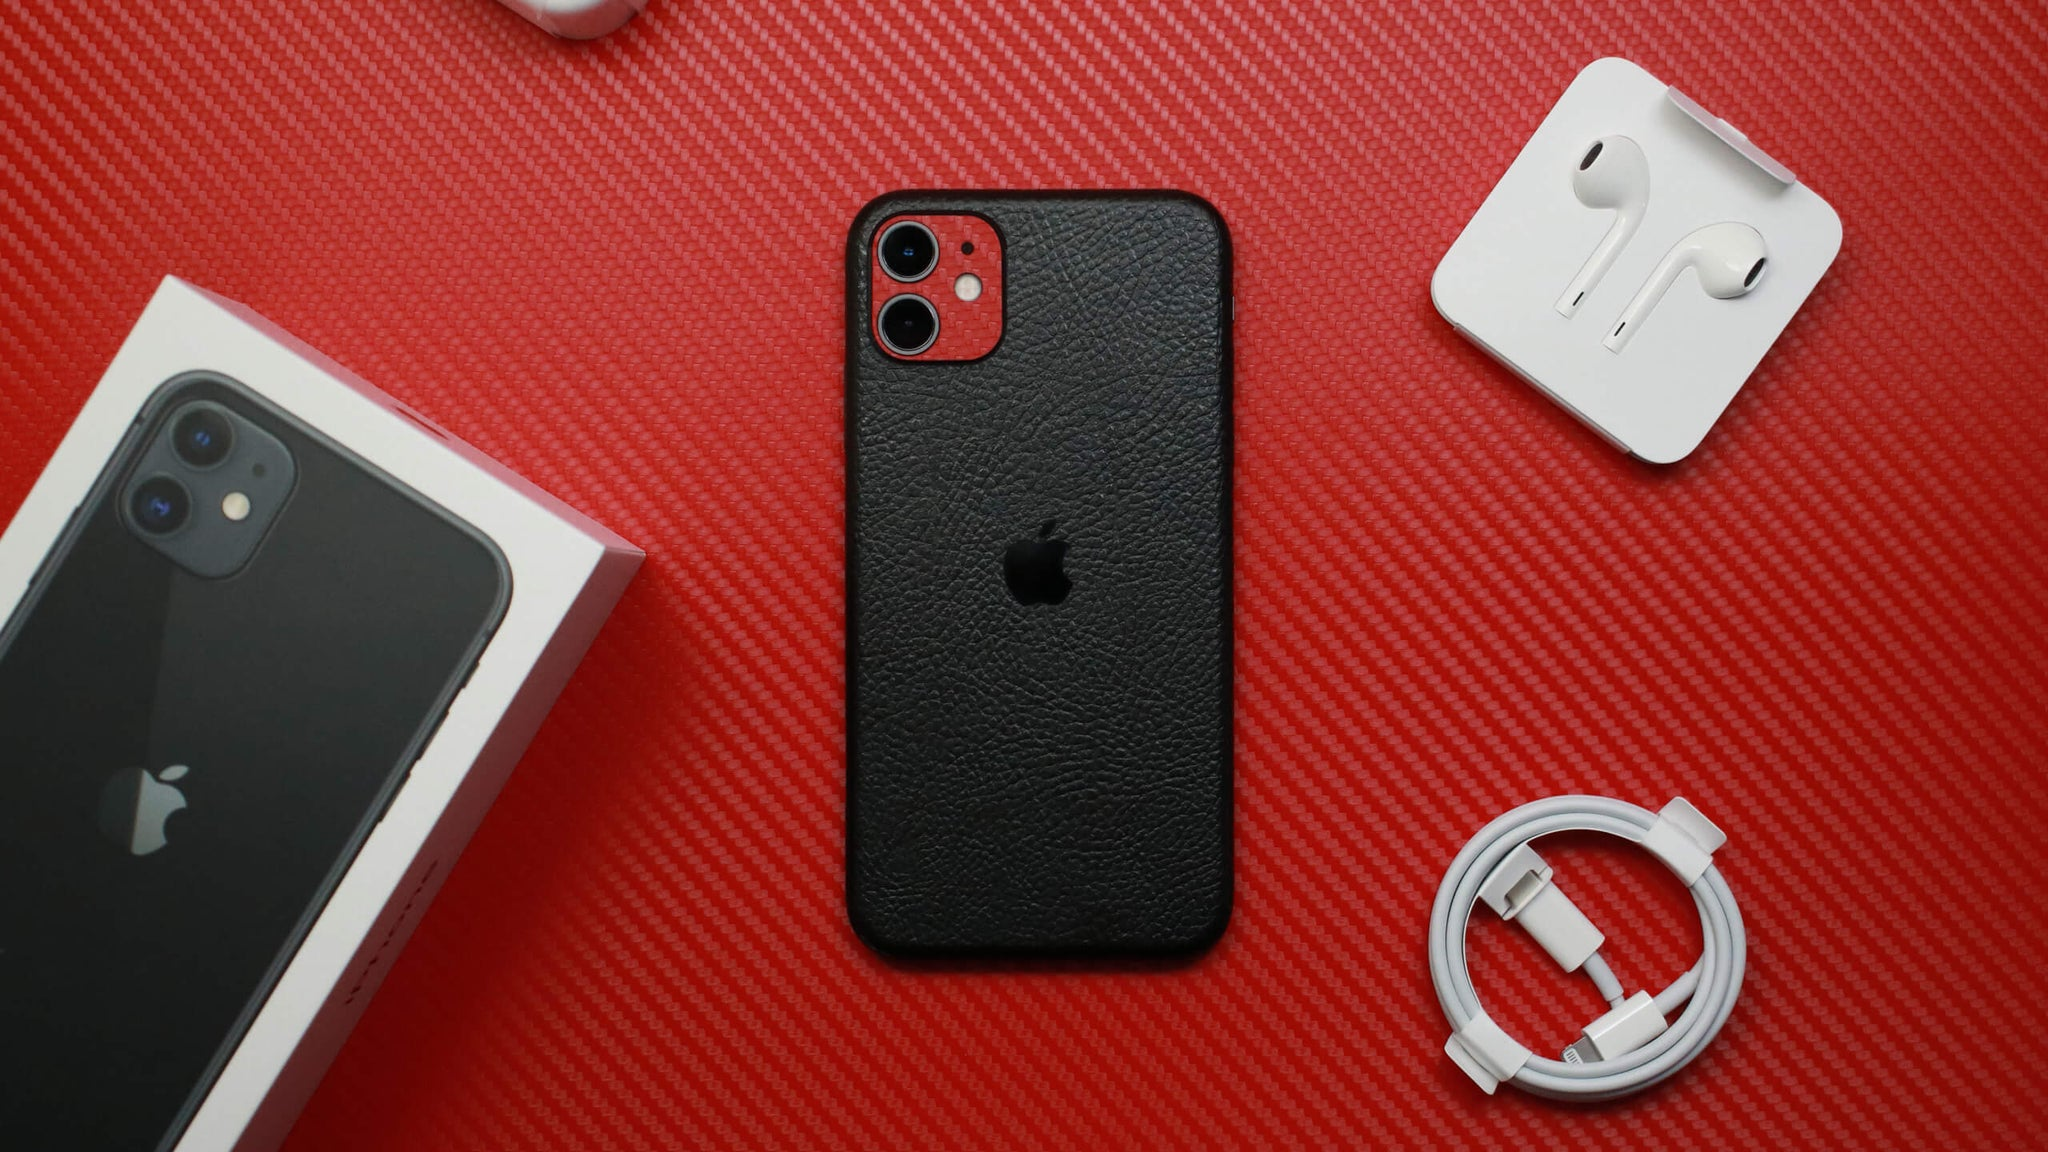 iPhone 11 Textured Black Leather Skins